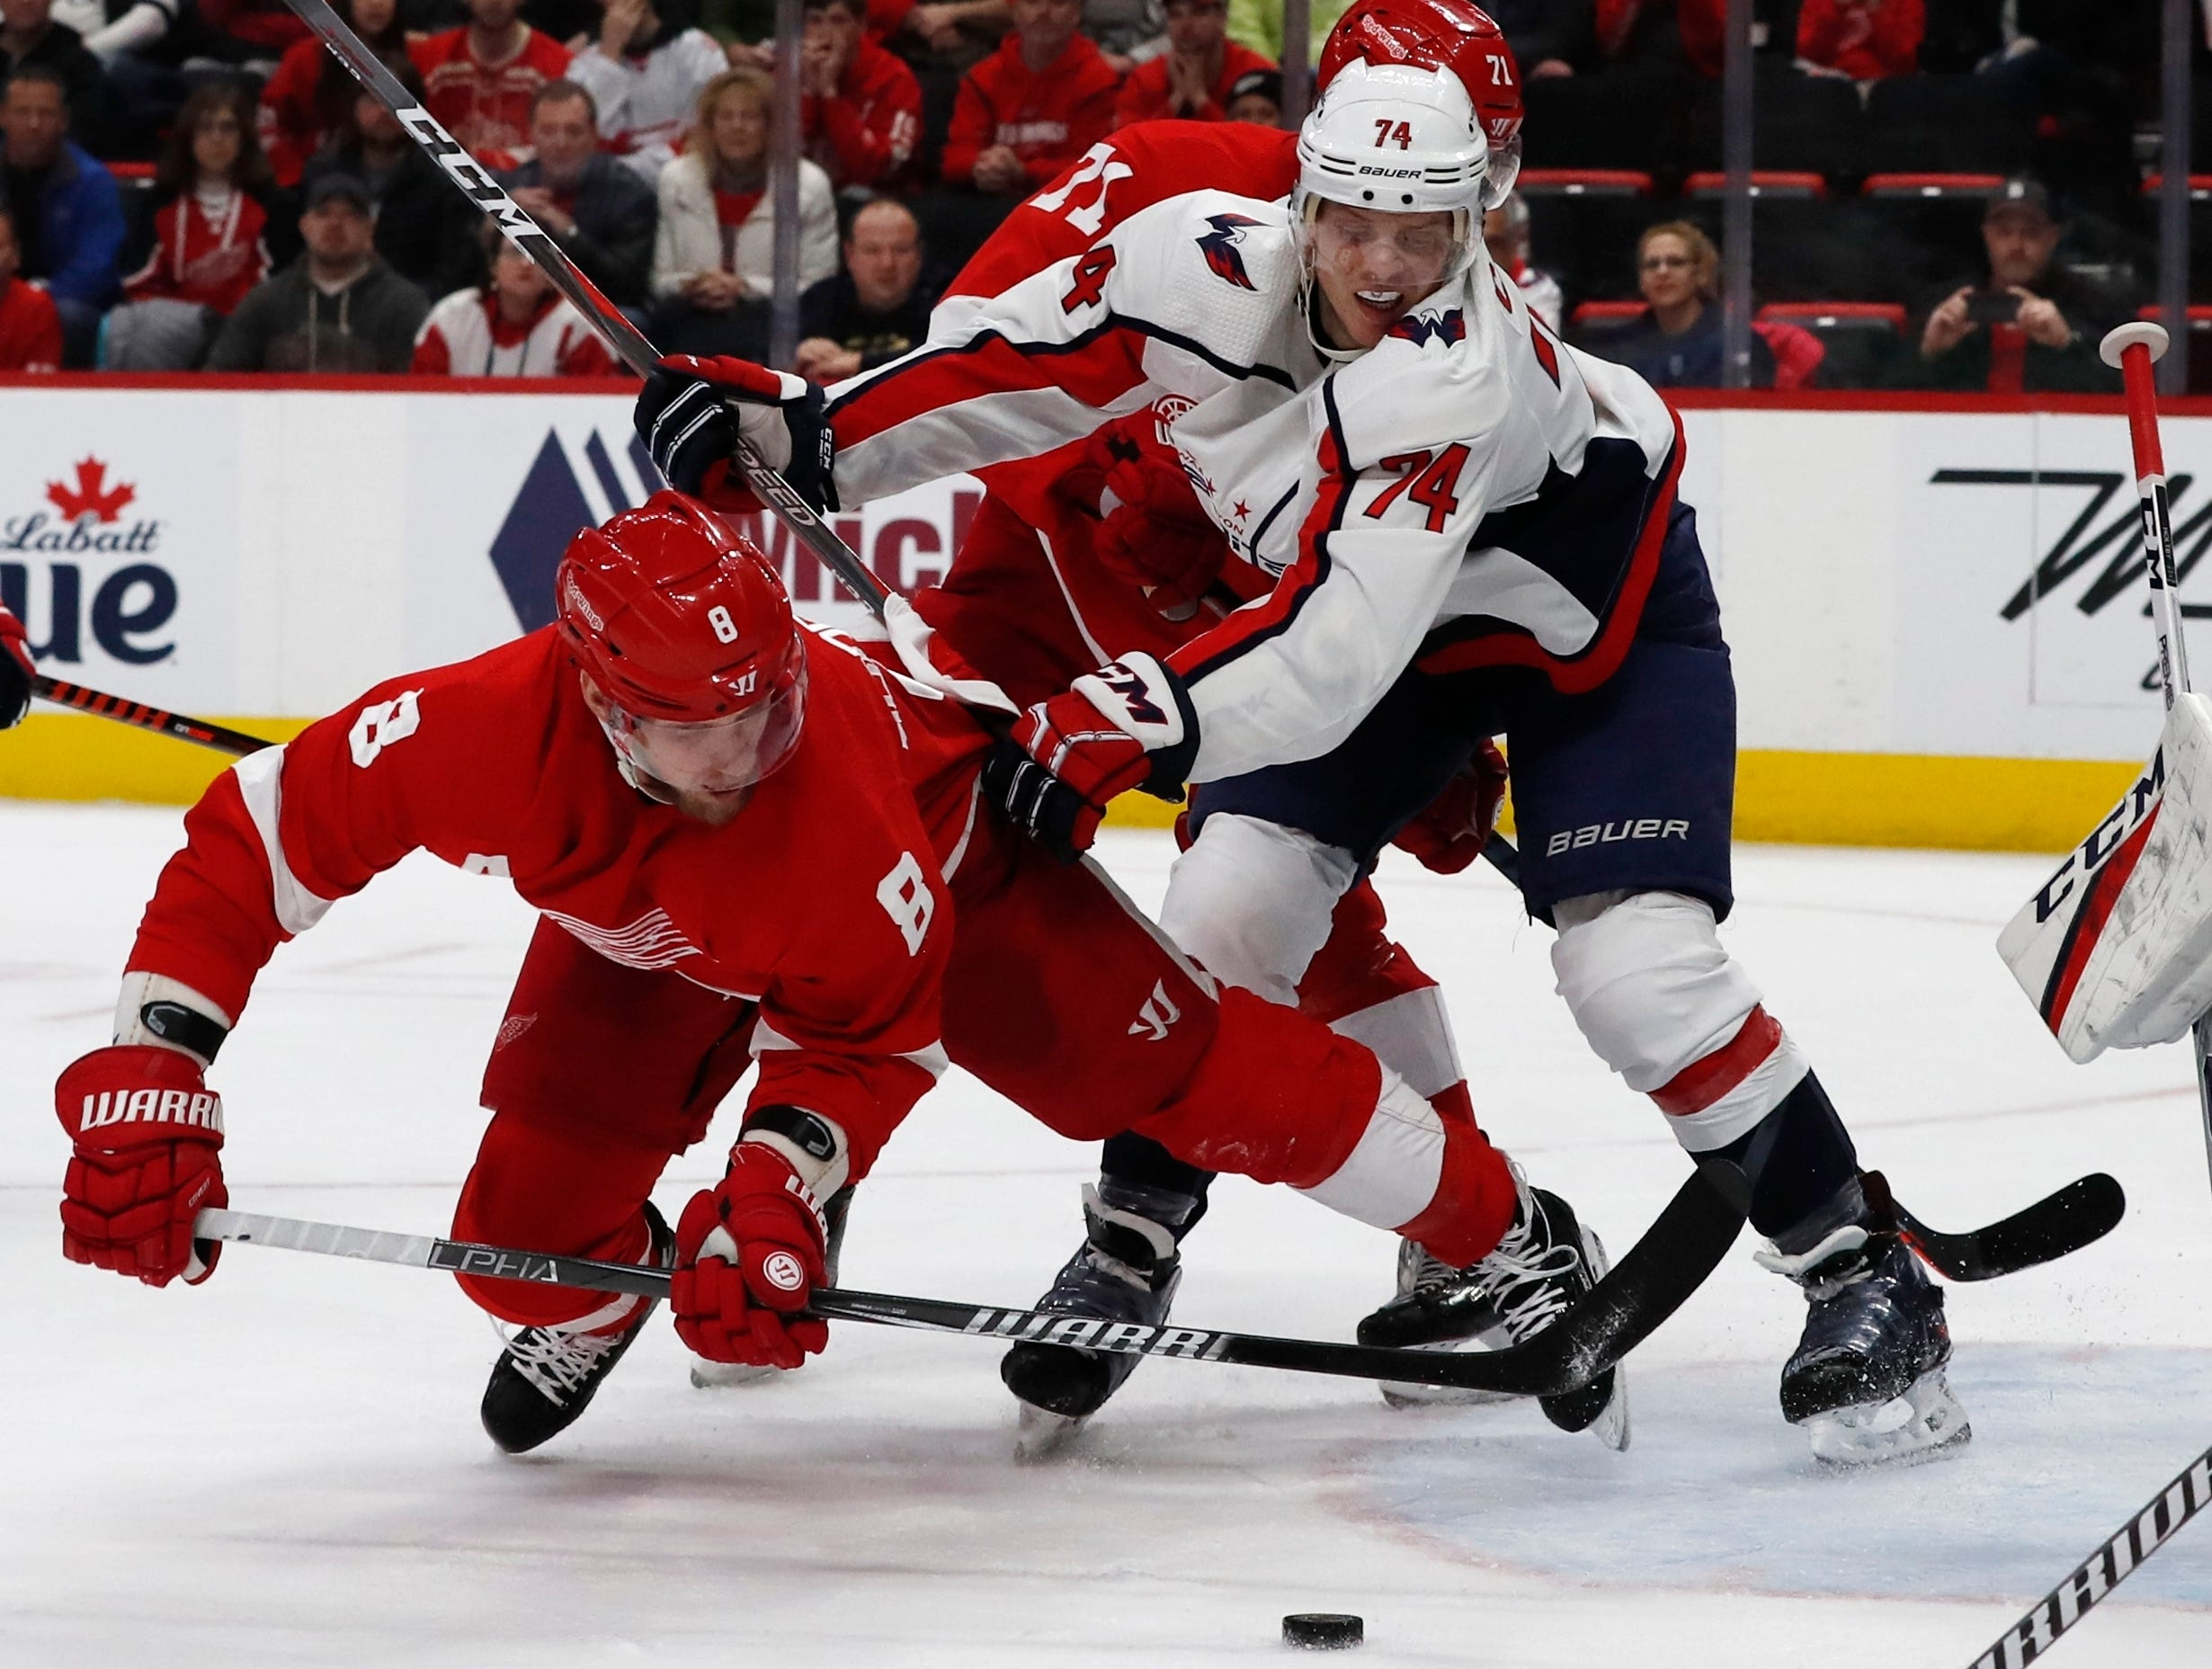 Detroit Red Wings left wing Justin Abdelkader (8) shoots toward the net as Washington Capitals defenseman John Carlson (74) defends during the third period.